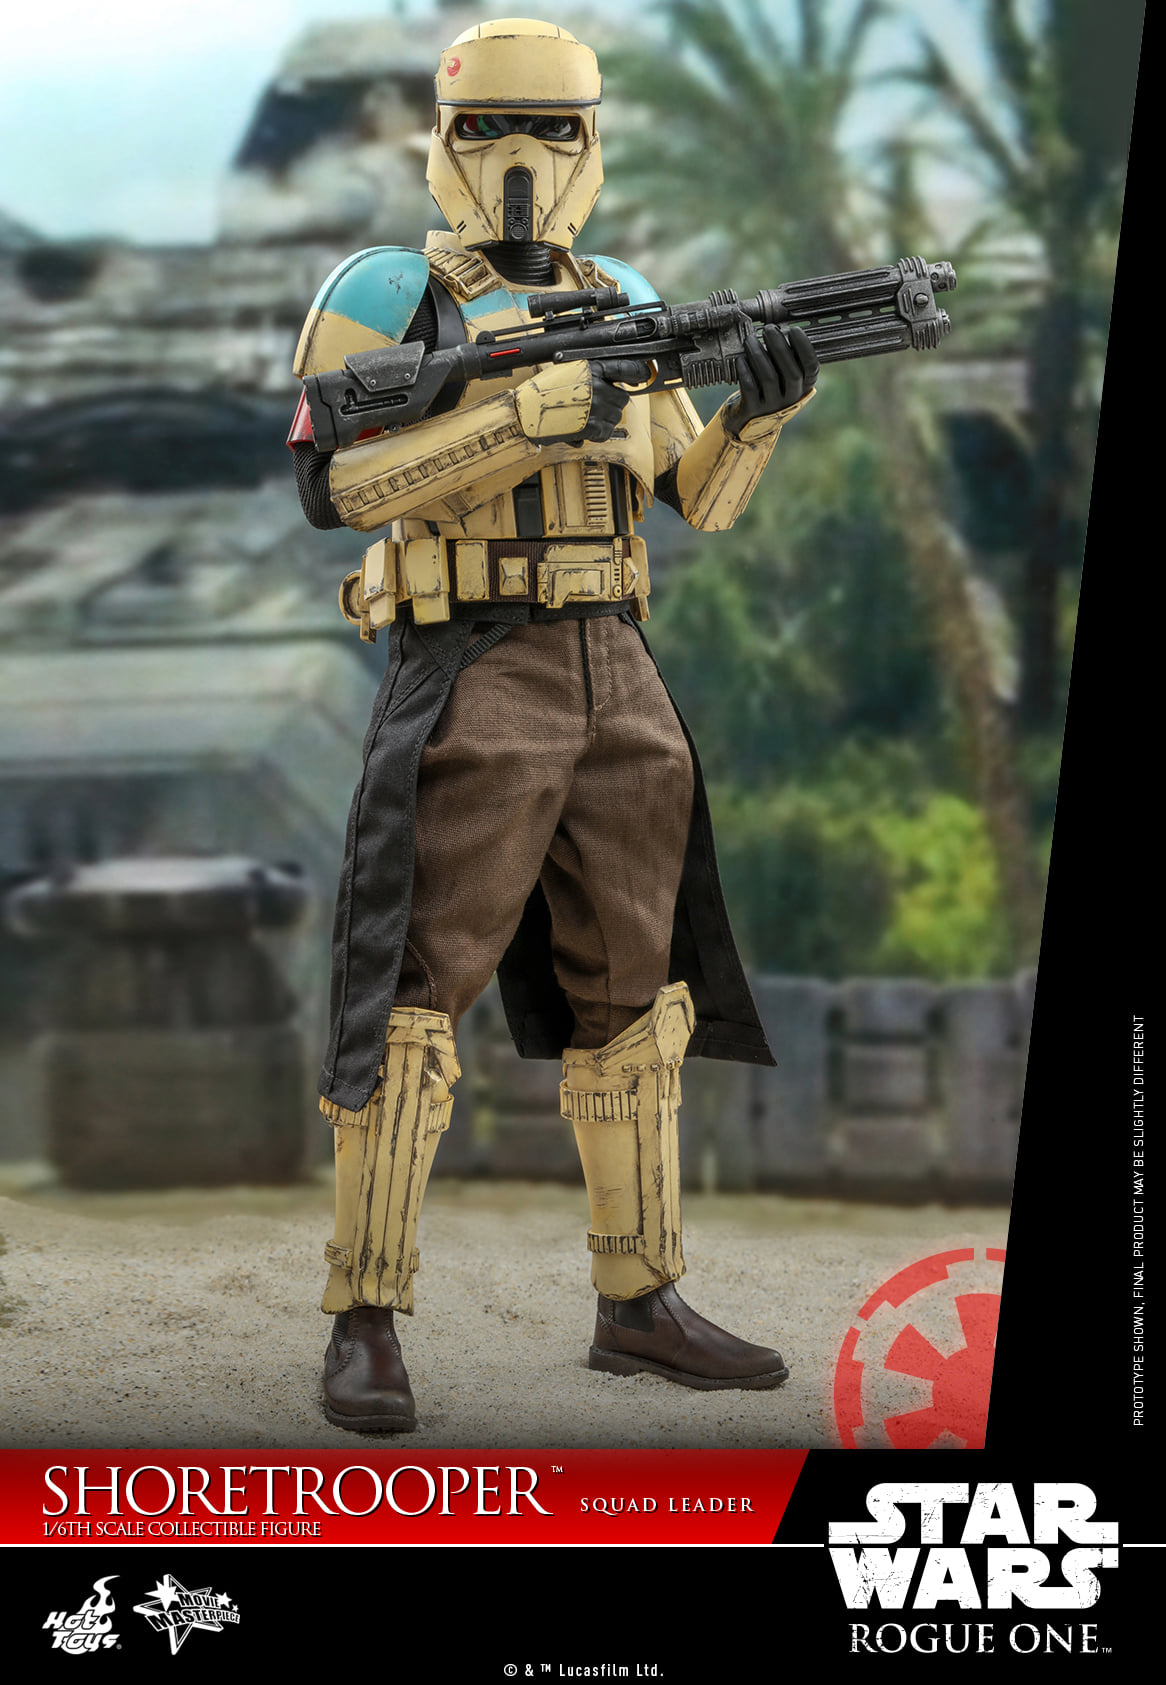 Pre-Order Hot Toys Star Wars Rogue One Shoretrooper Squad Leader